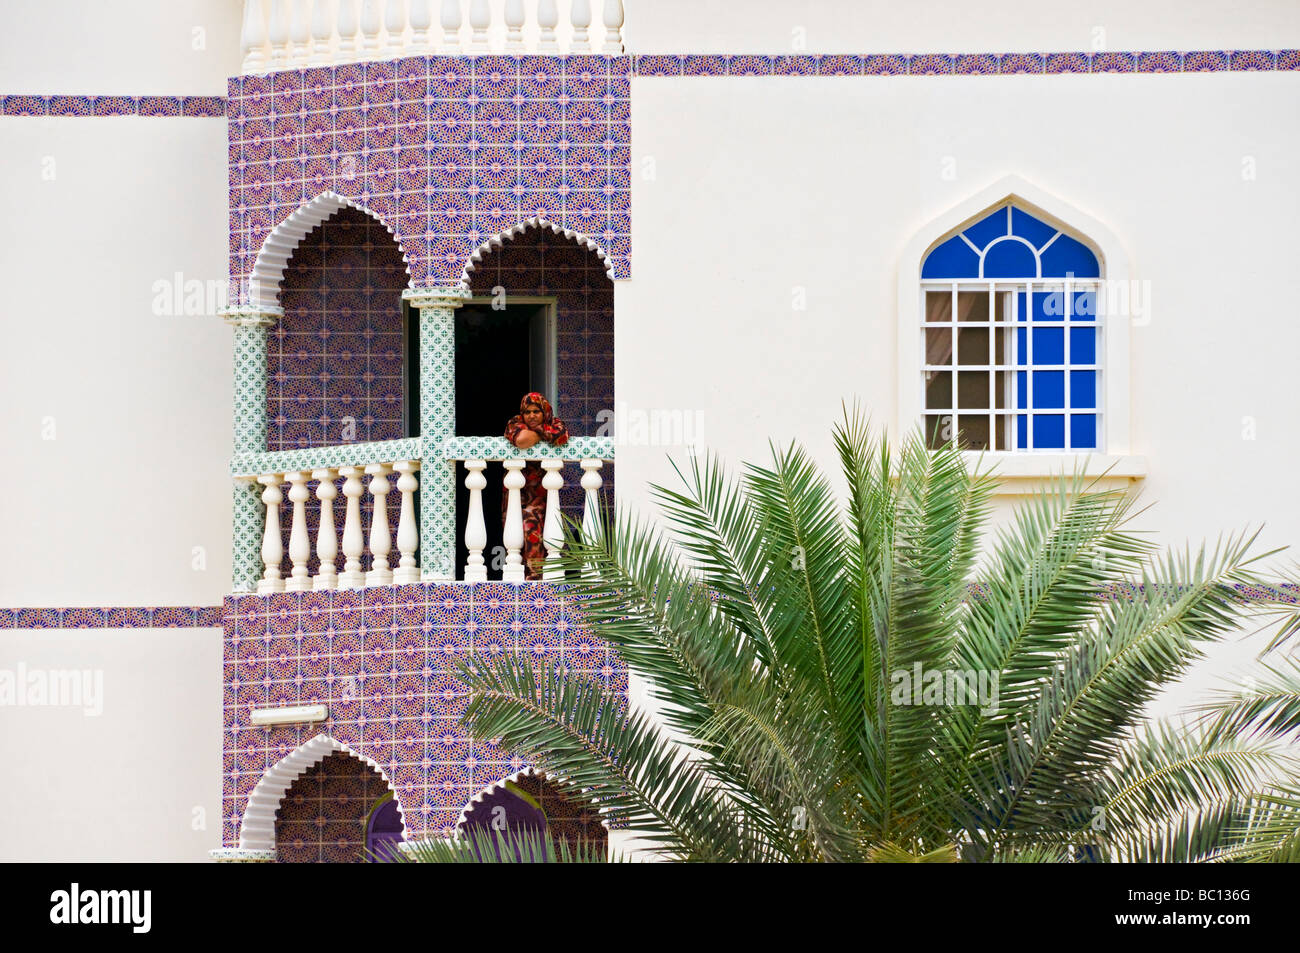 Typical house Arabic architecture in Muscat Oman - Stock Image